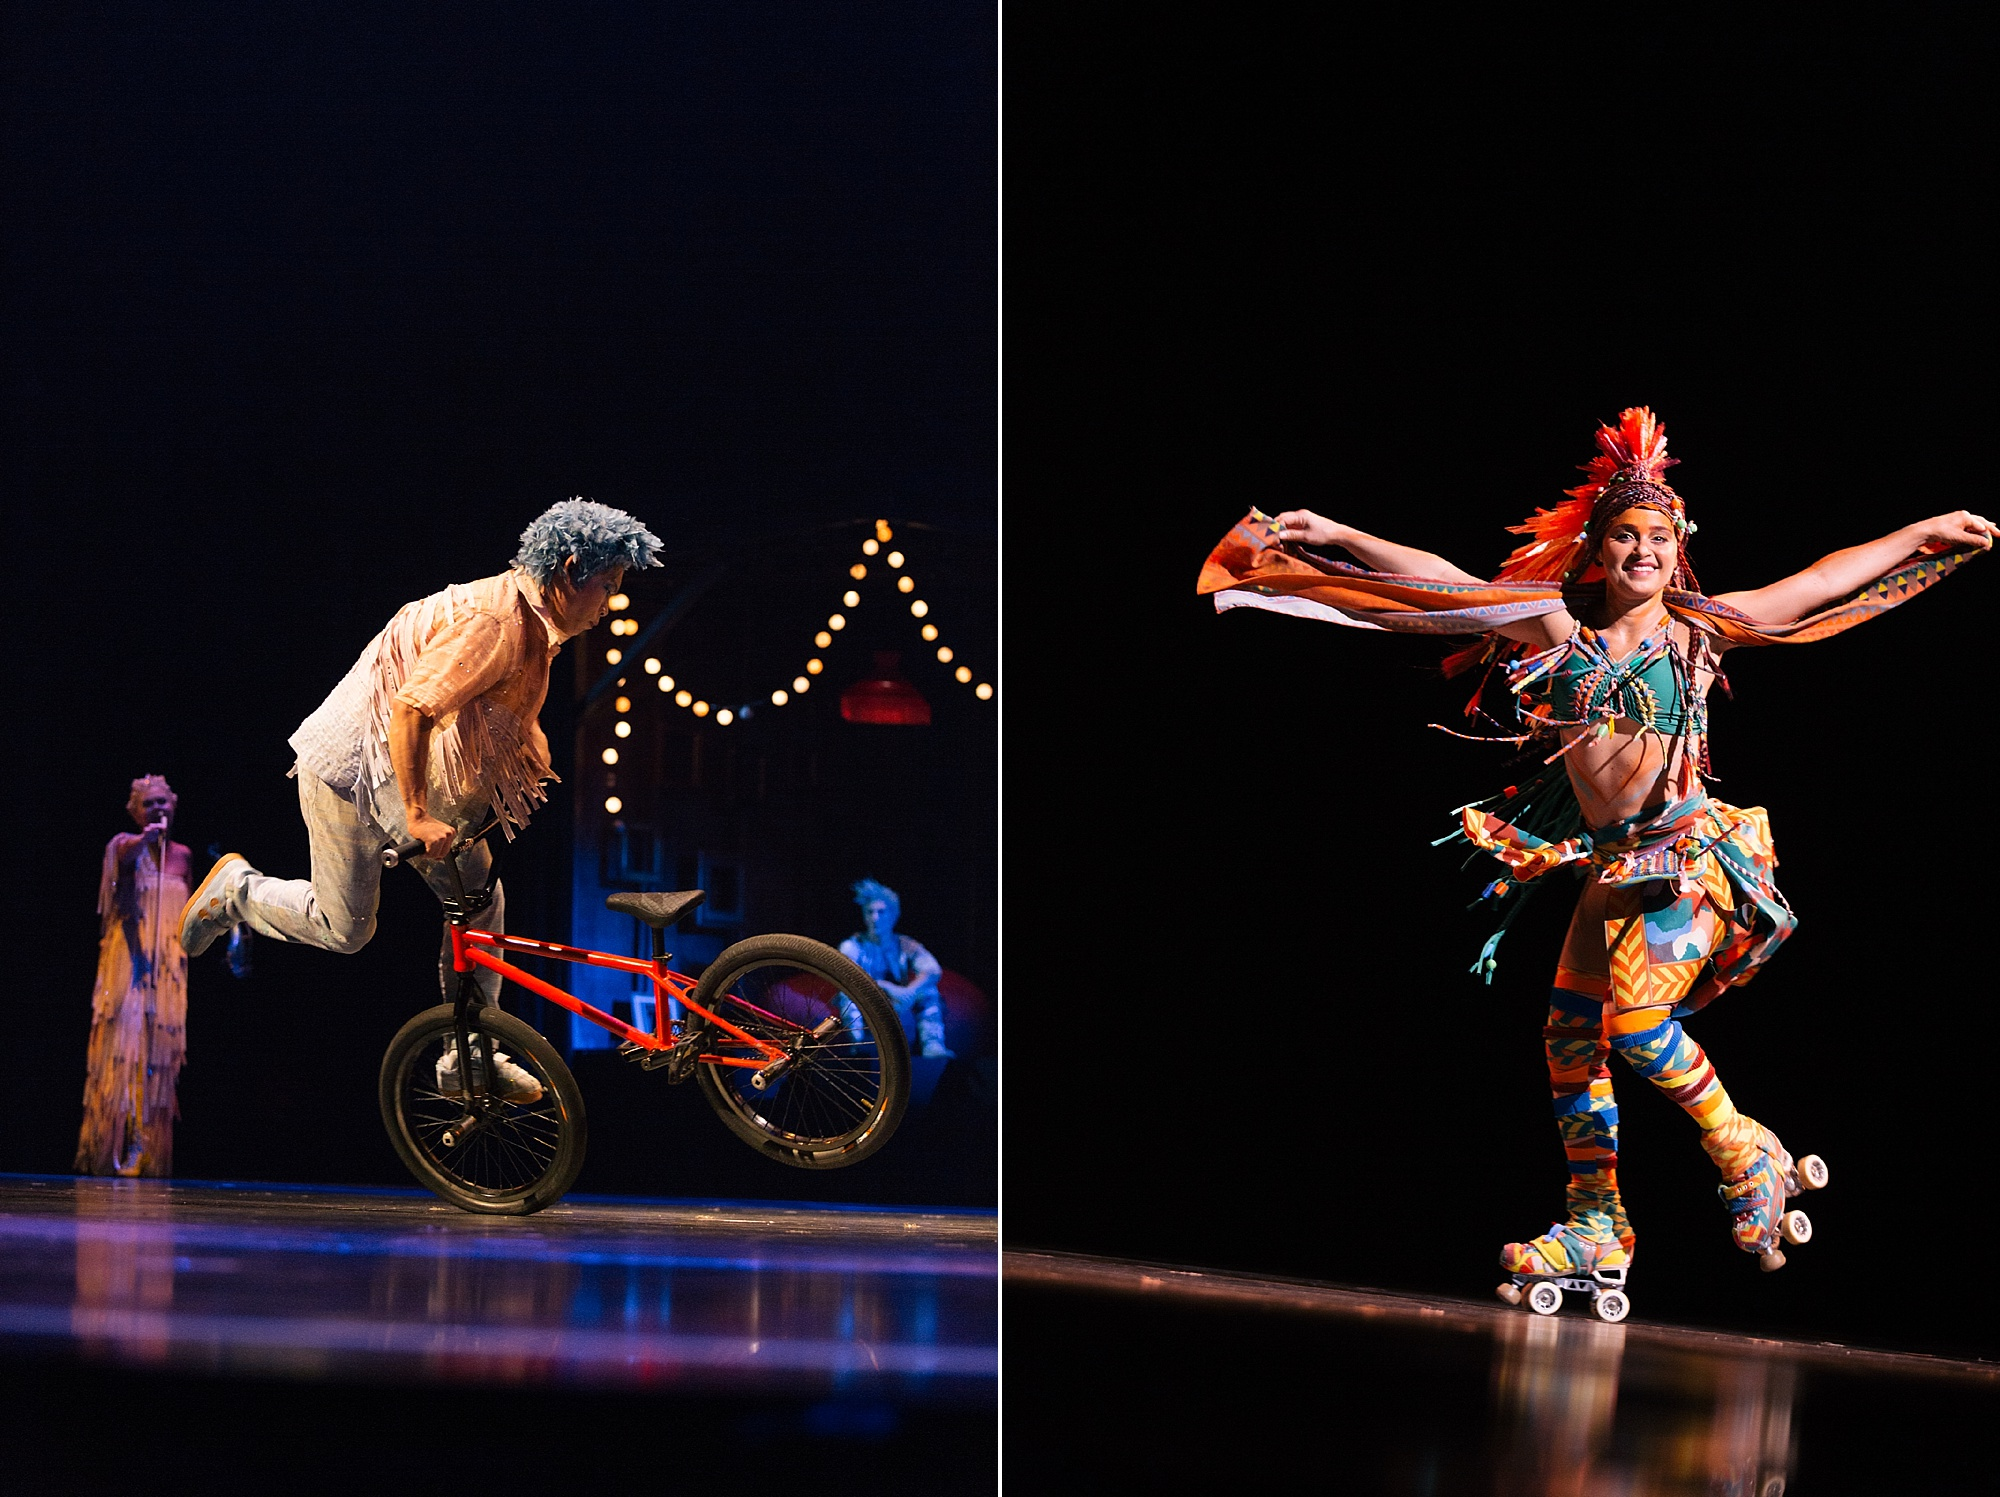 Joe_Mac_Creative_cirque_du_soleil_volta_Greater Philadelphia_Expo_Center_Oaks_PA_Visit_Valley _Forge_0022.jpg